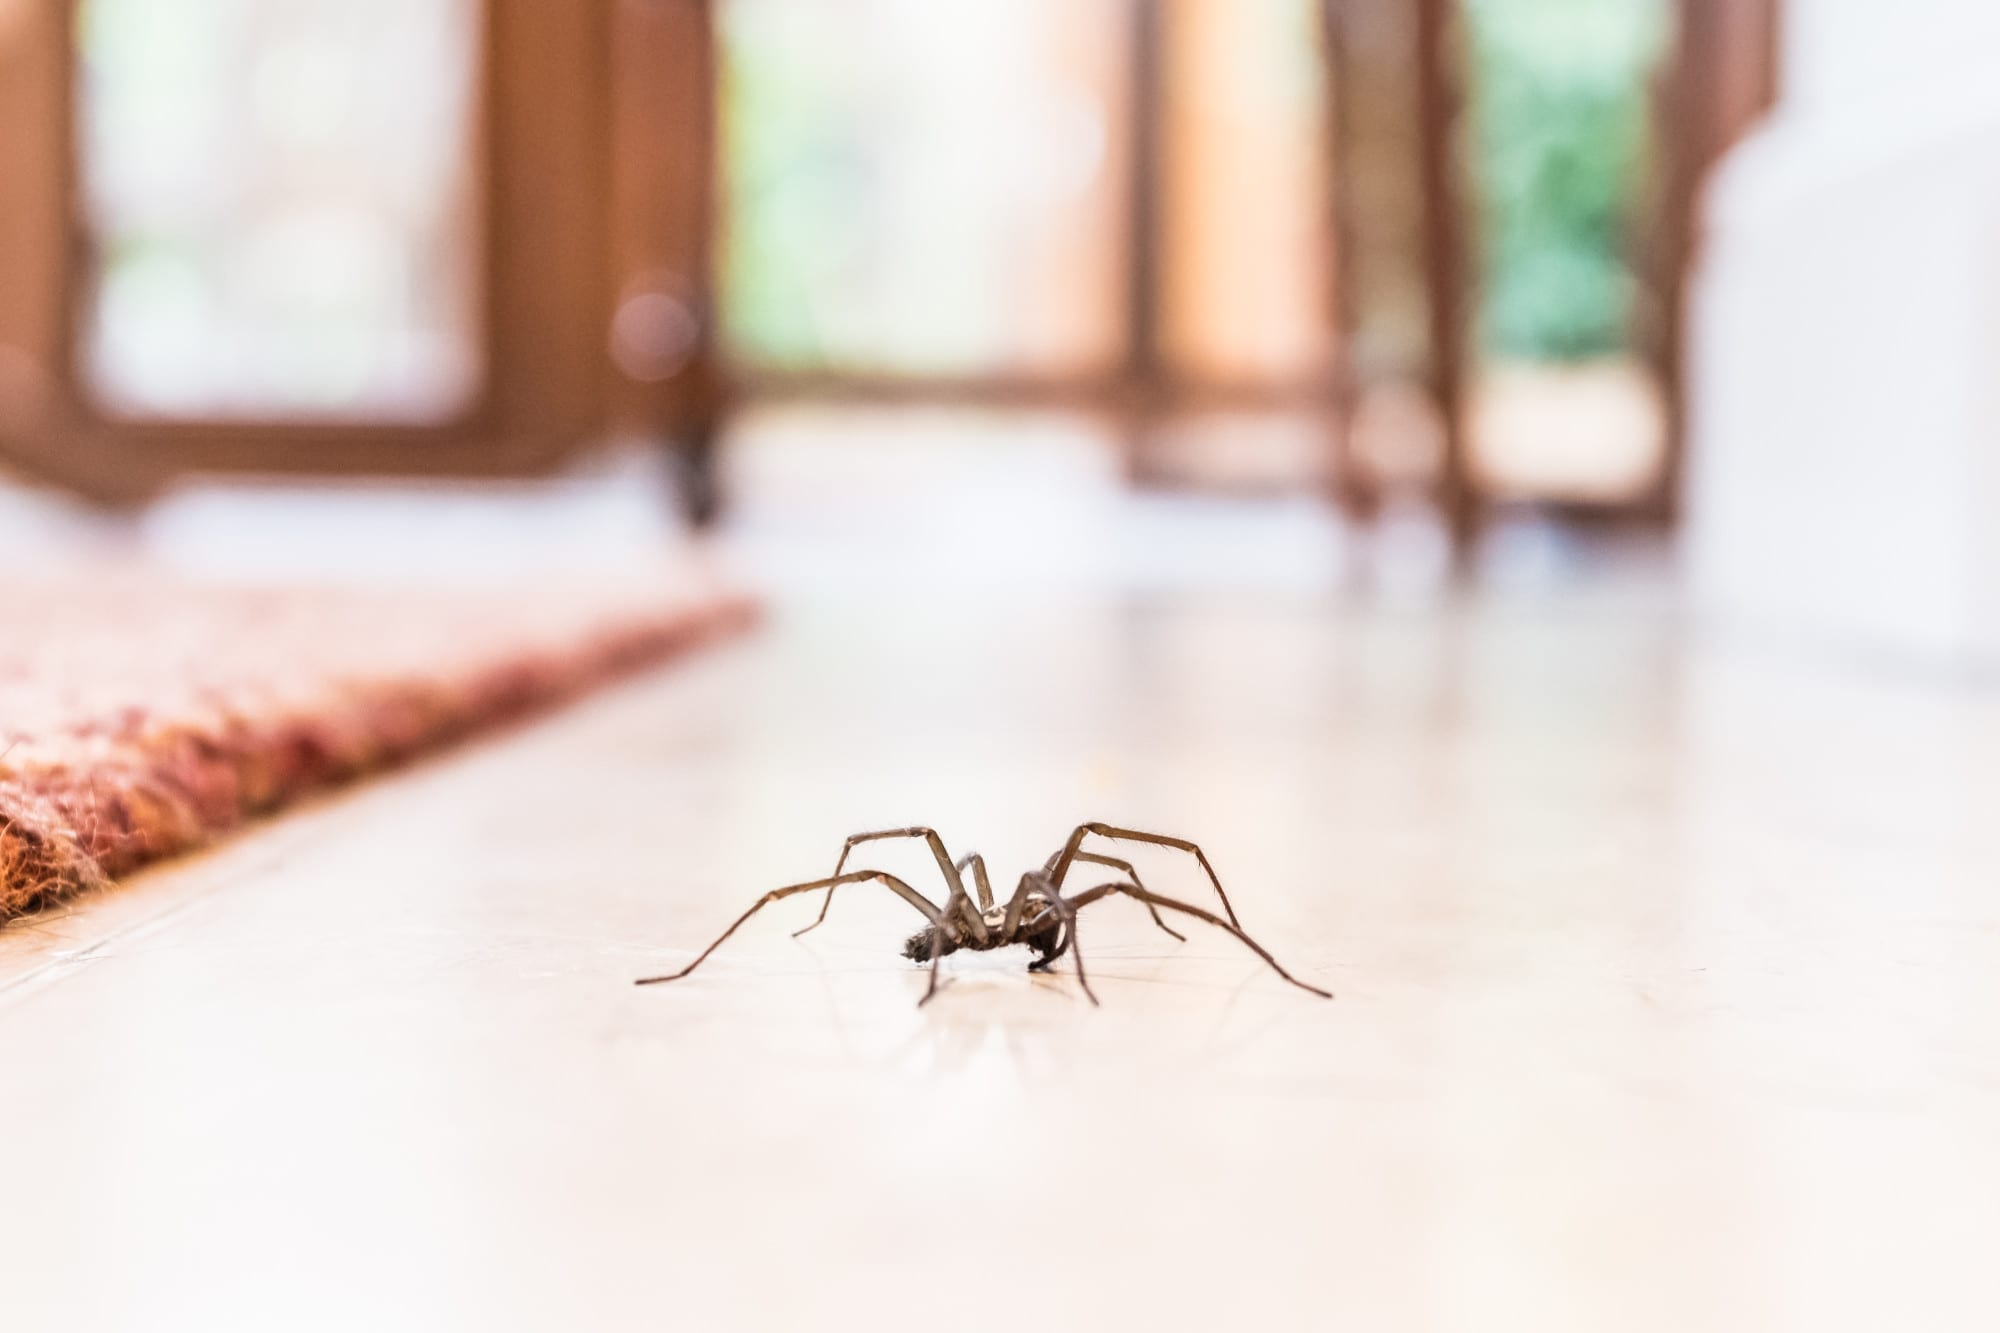 signs of a spider infestation